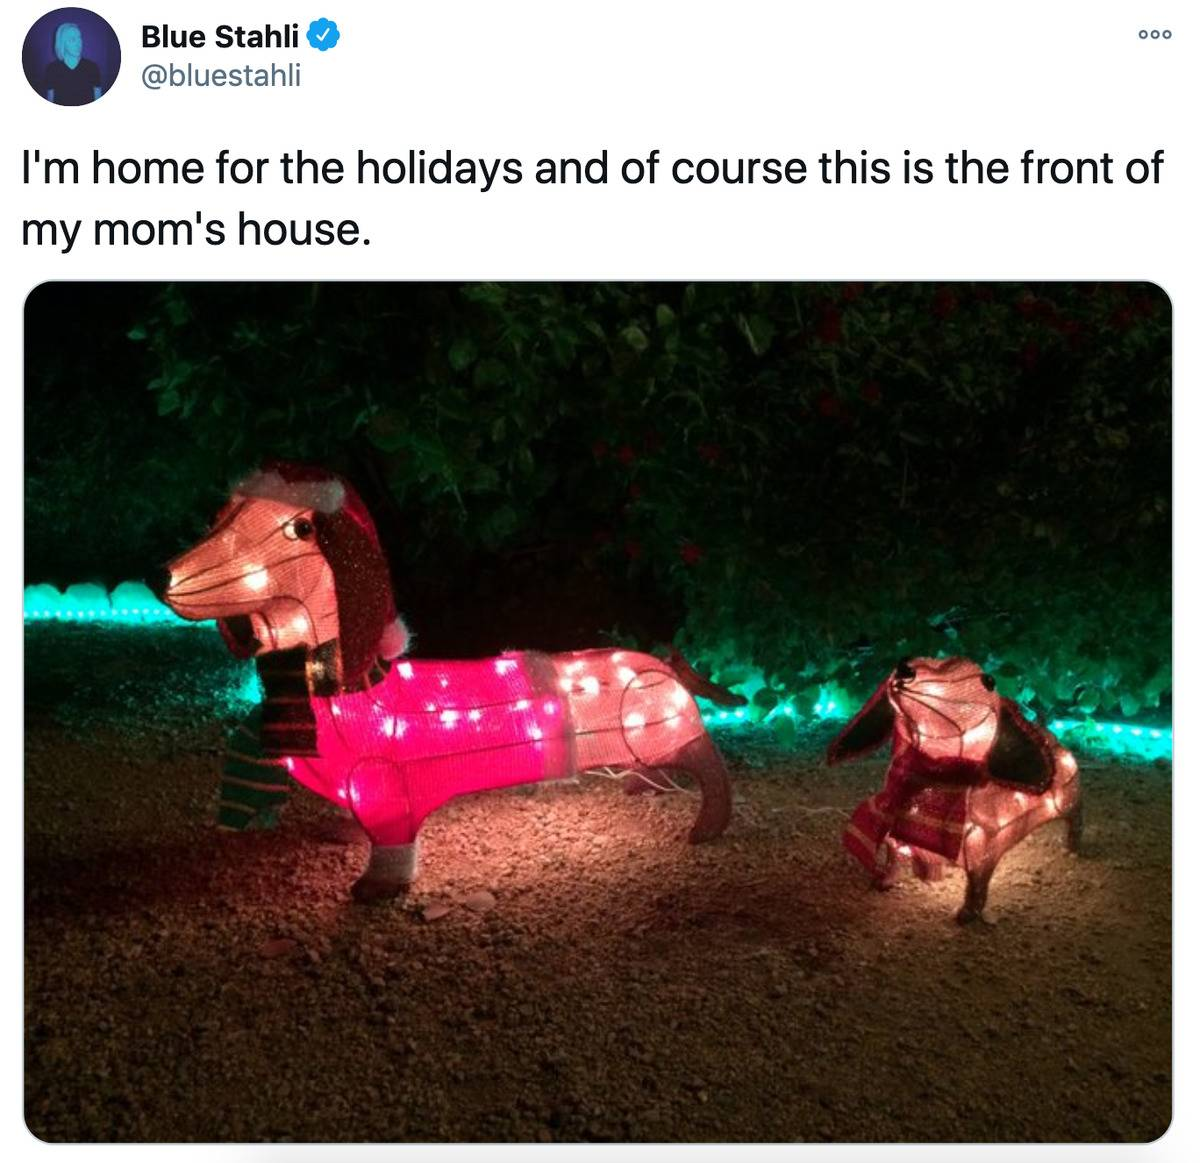 Tweet: I'm home for the holidays and of course this is the front of my mom's house [pictured: light-up dogs in Christmas sweaters]